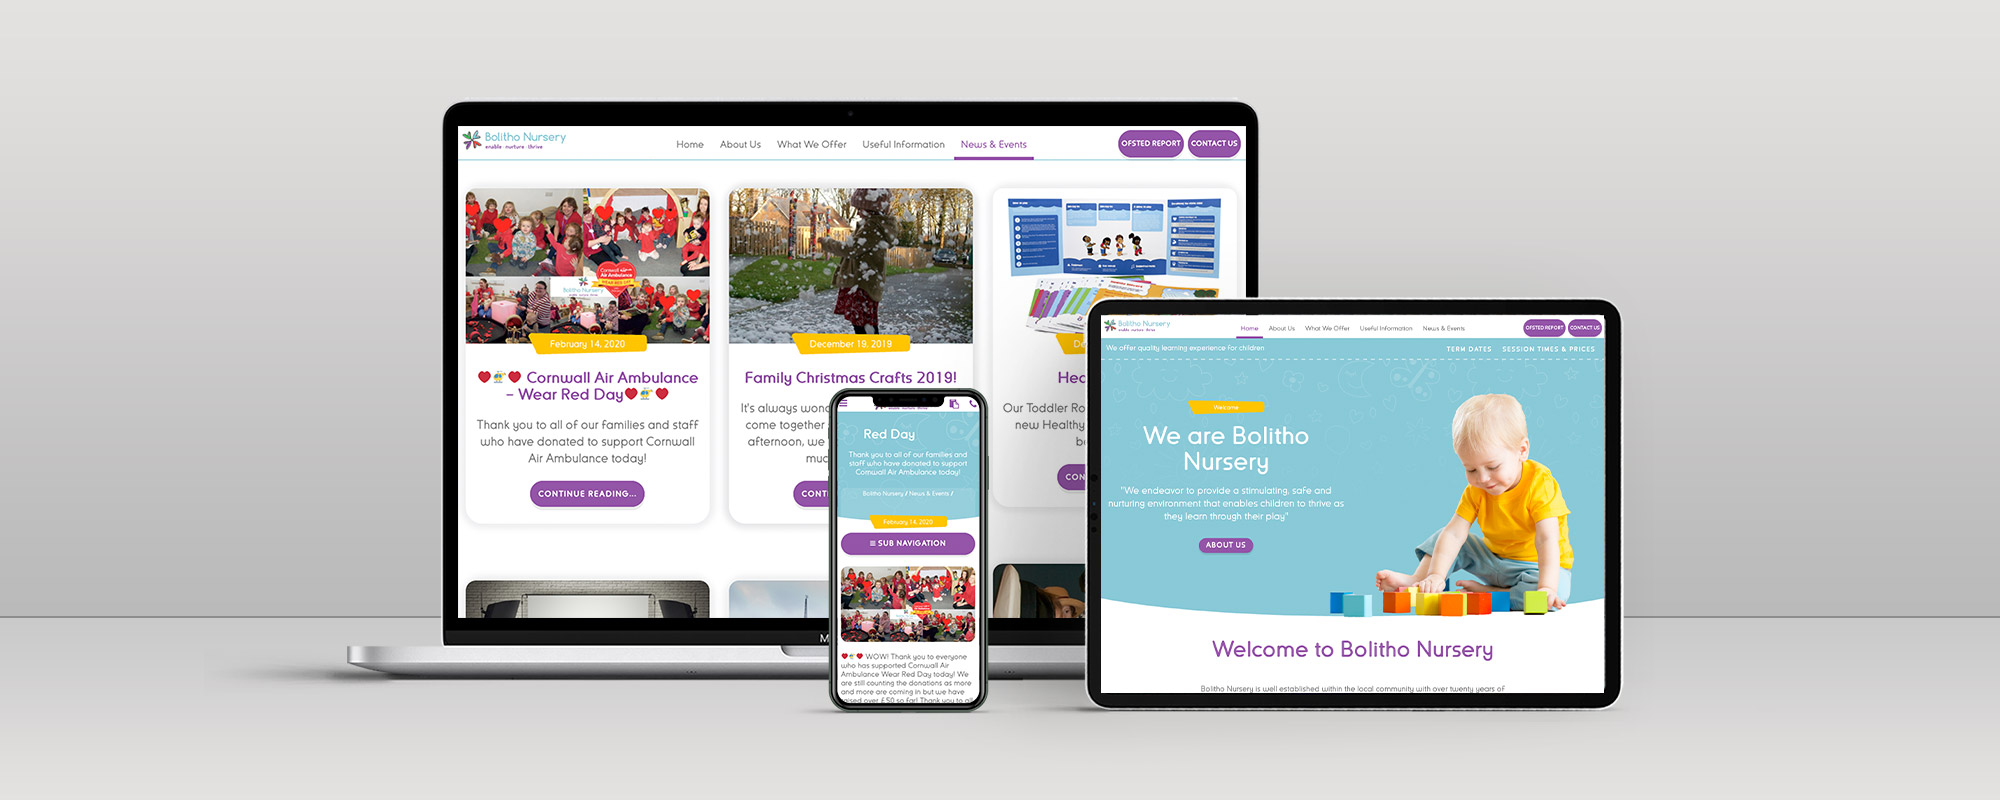 Bolitho Nursery Wordpress Website Design on 3 Devices